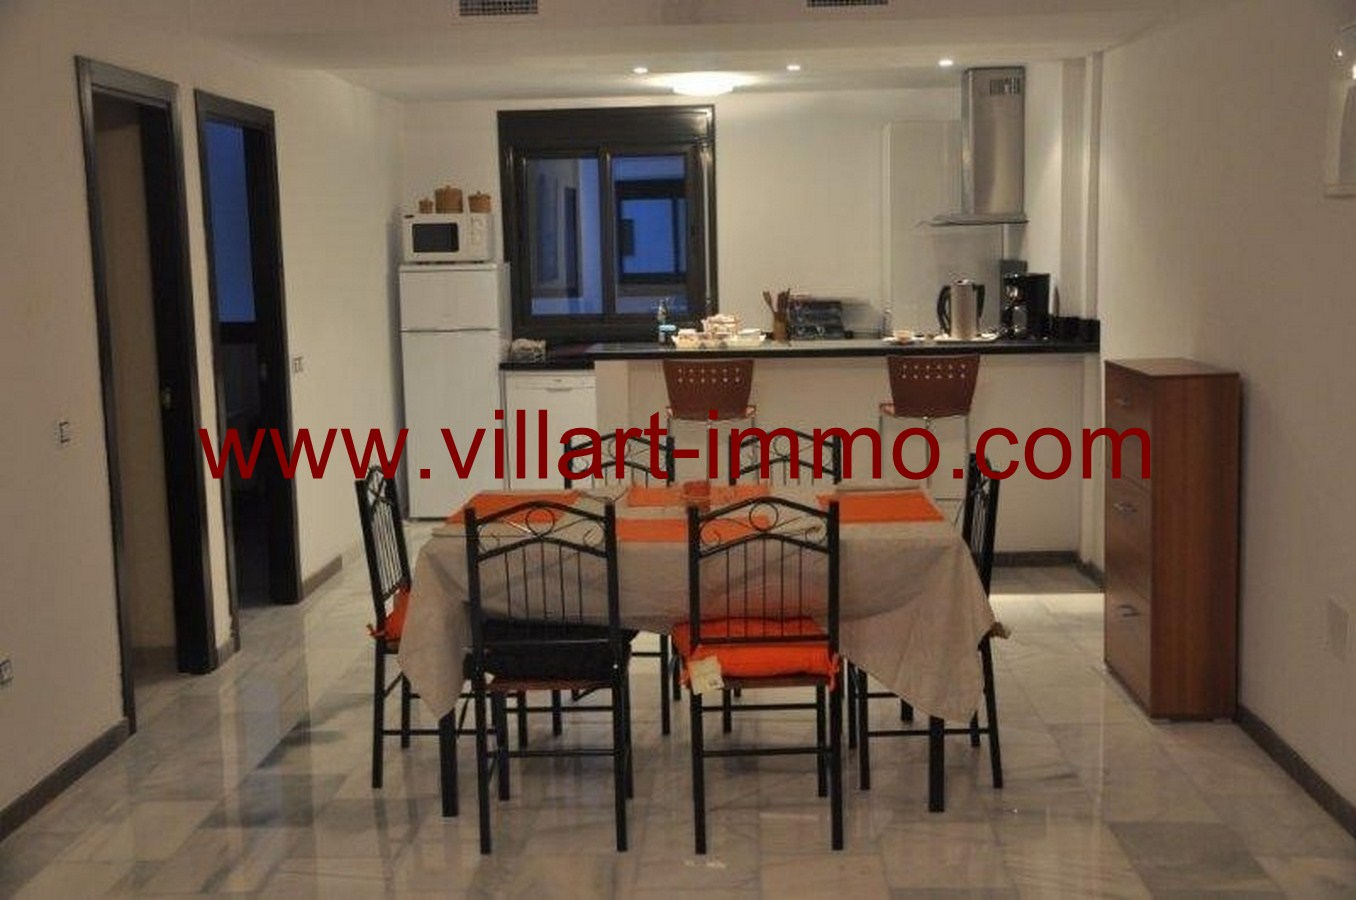 Location appartement meubl centre ville de tanger villart - Location studio meuble montpellier centre ville ...